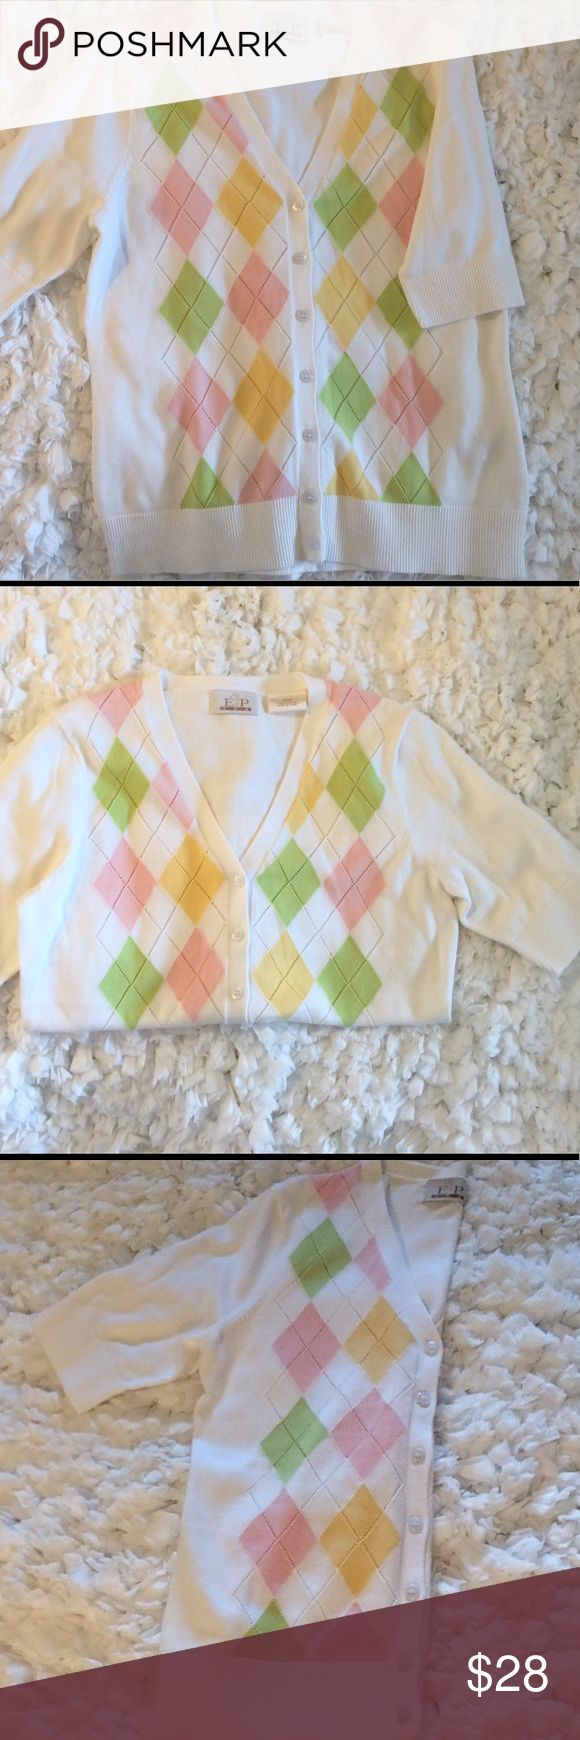 "E P Pro Argyle 100% Cotton Sweater Cool Cotton Short Sleeve Golf Sweater. Not just for golf. Summery pink, yellow, and light green argyle on white background. Length 23""' chest 19"". E P Pro is a high end golf clothing brand. E P Pro Sweaters Cardigans"